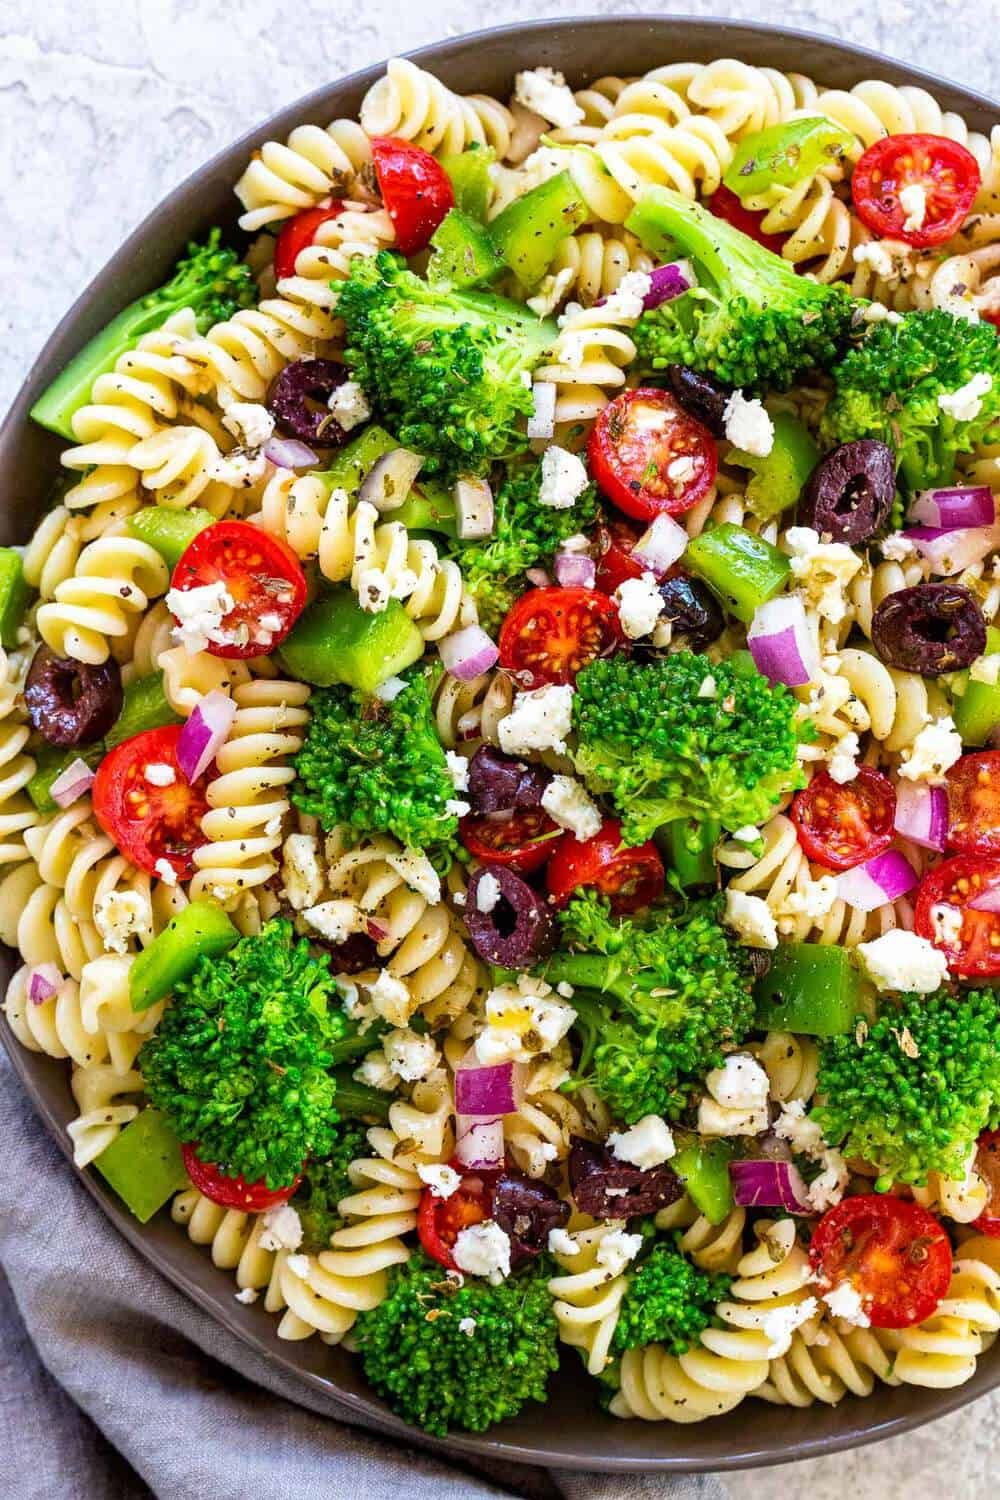 Greek Broccoli Pasta Salad The Recipe Critic